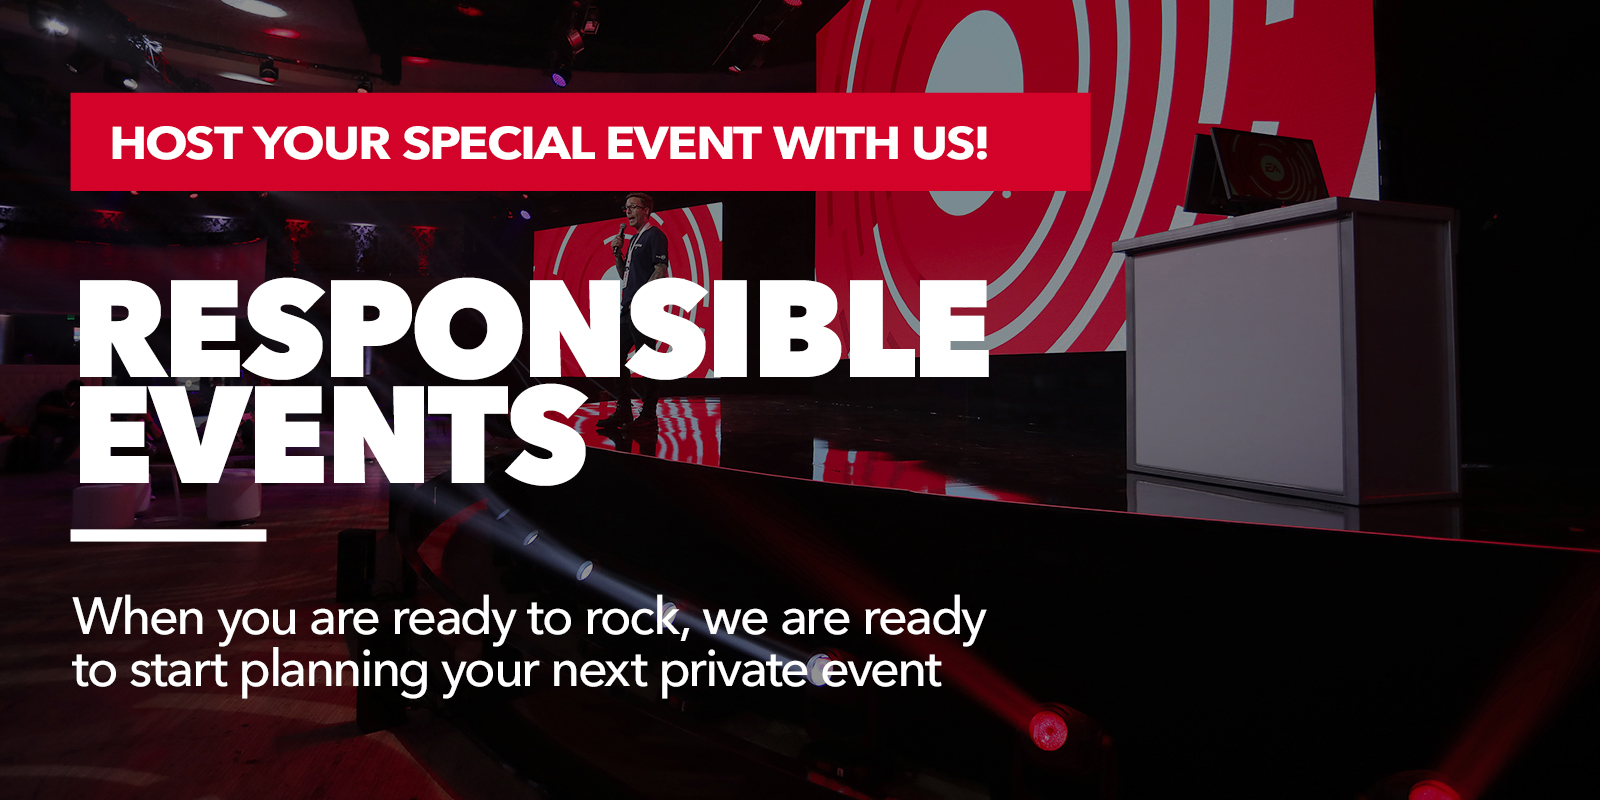 Host your Special Event with Us - Responsible Events - we are ready to start planning your next private Event